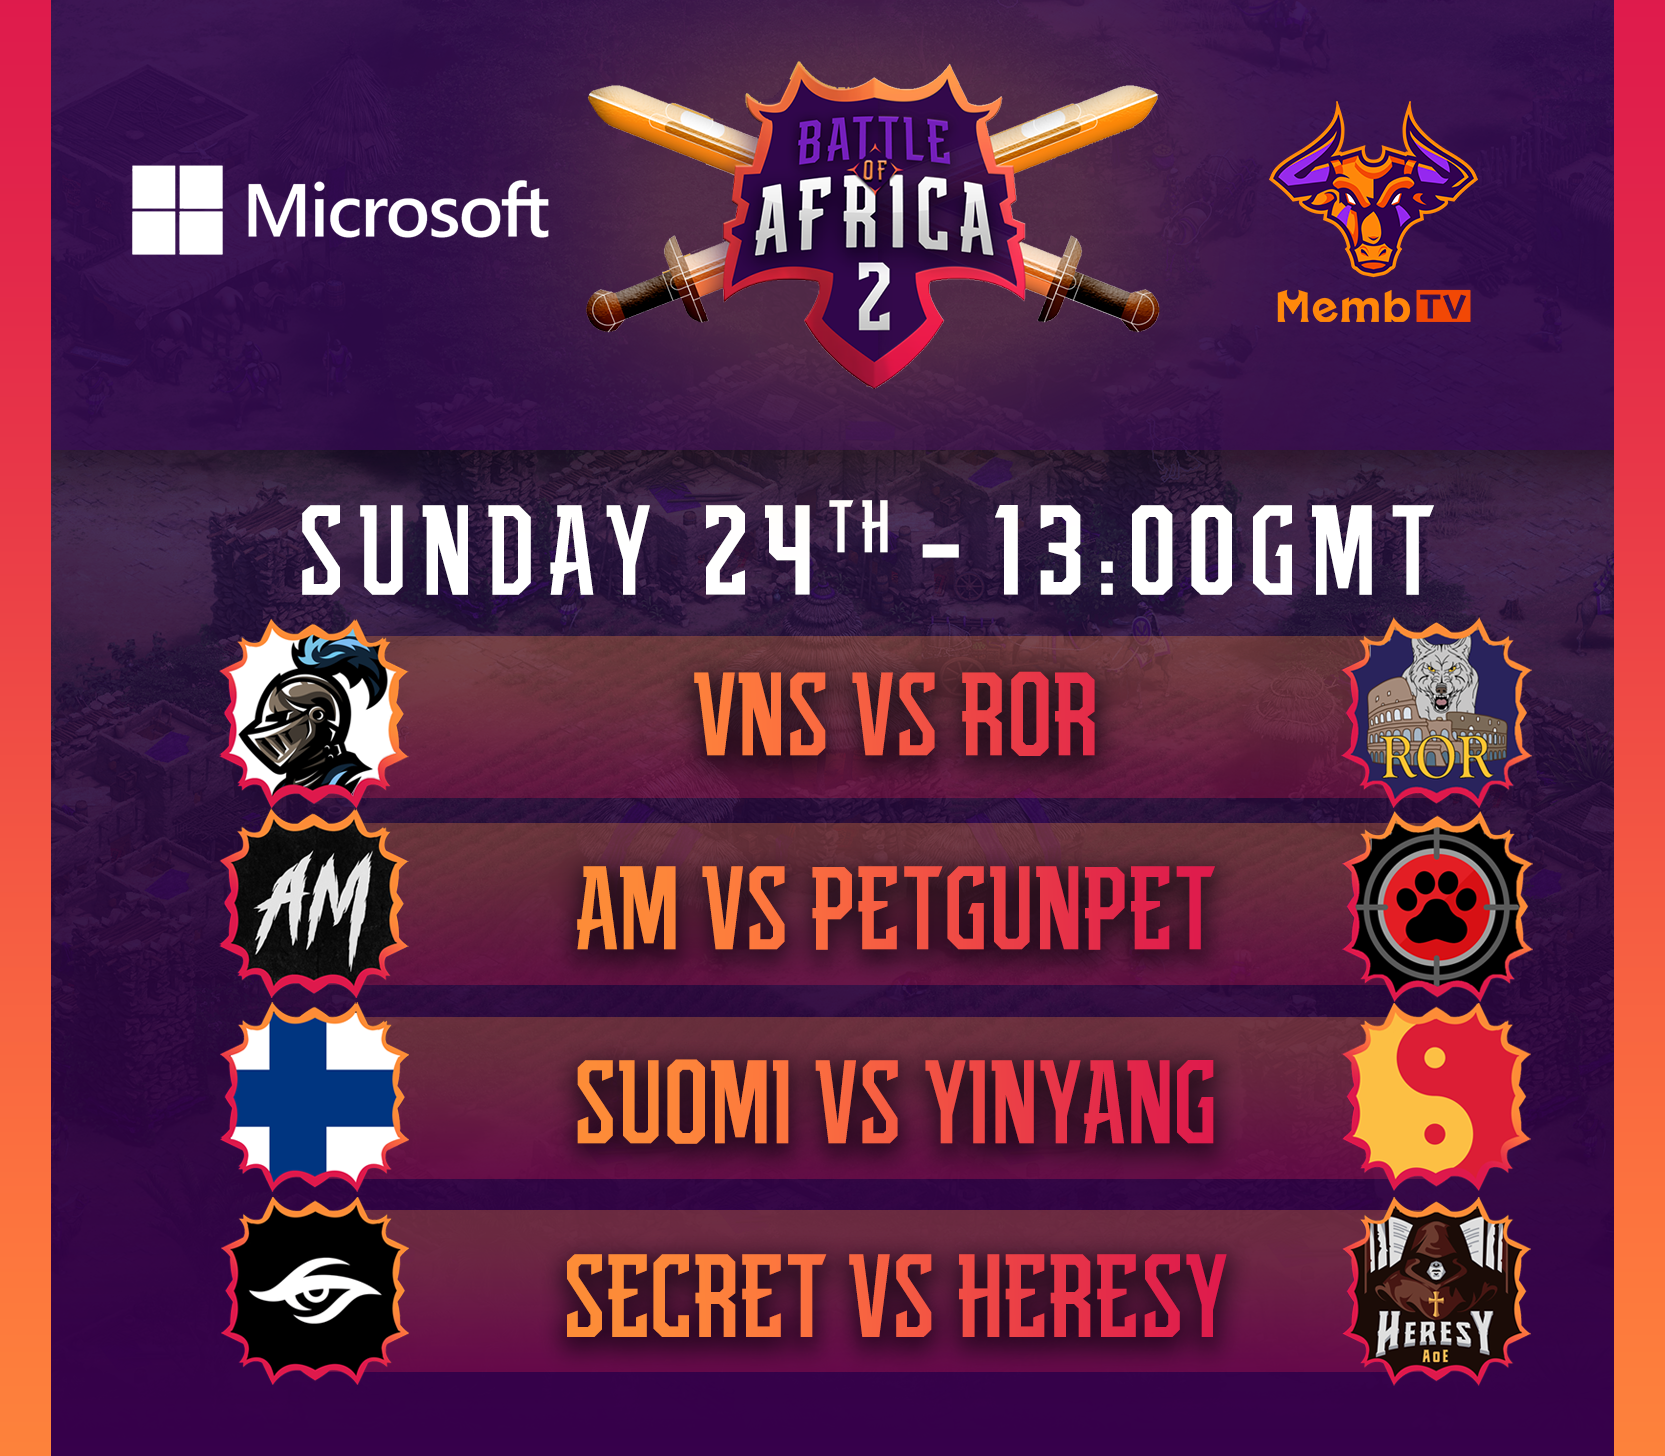 Sunday 24 Schedule.png